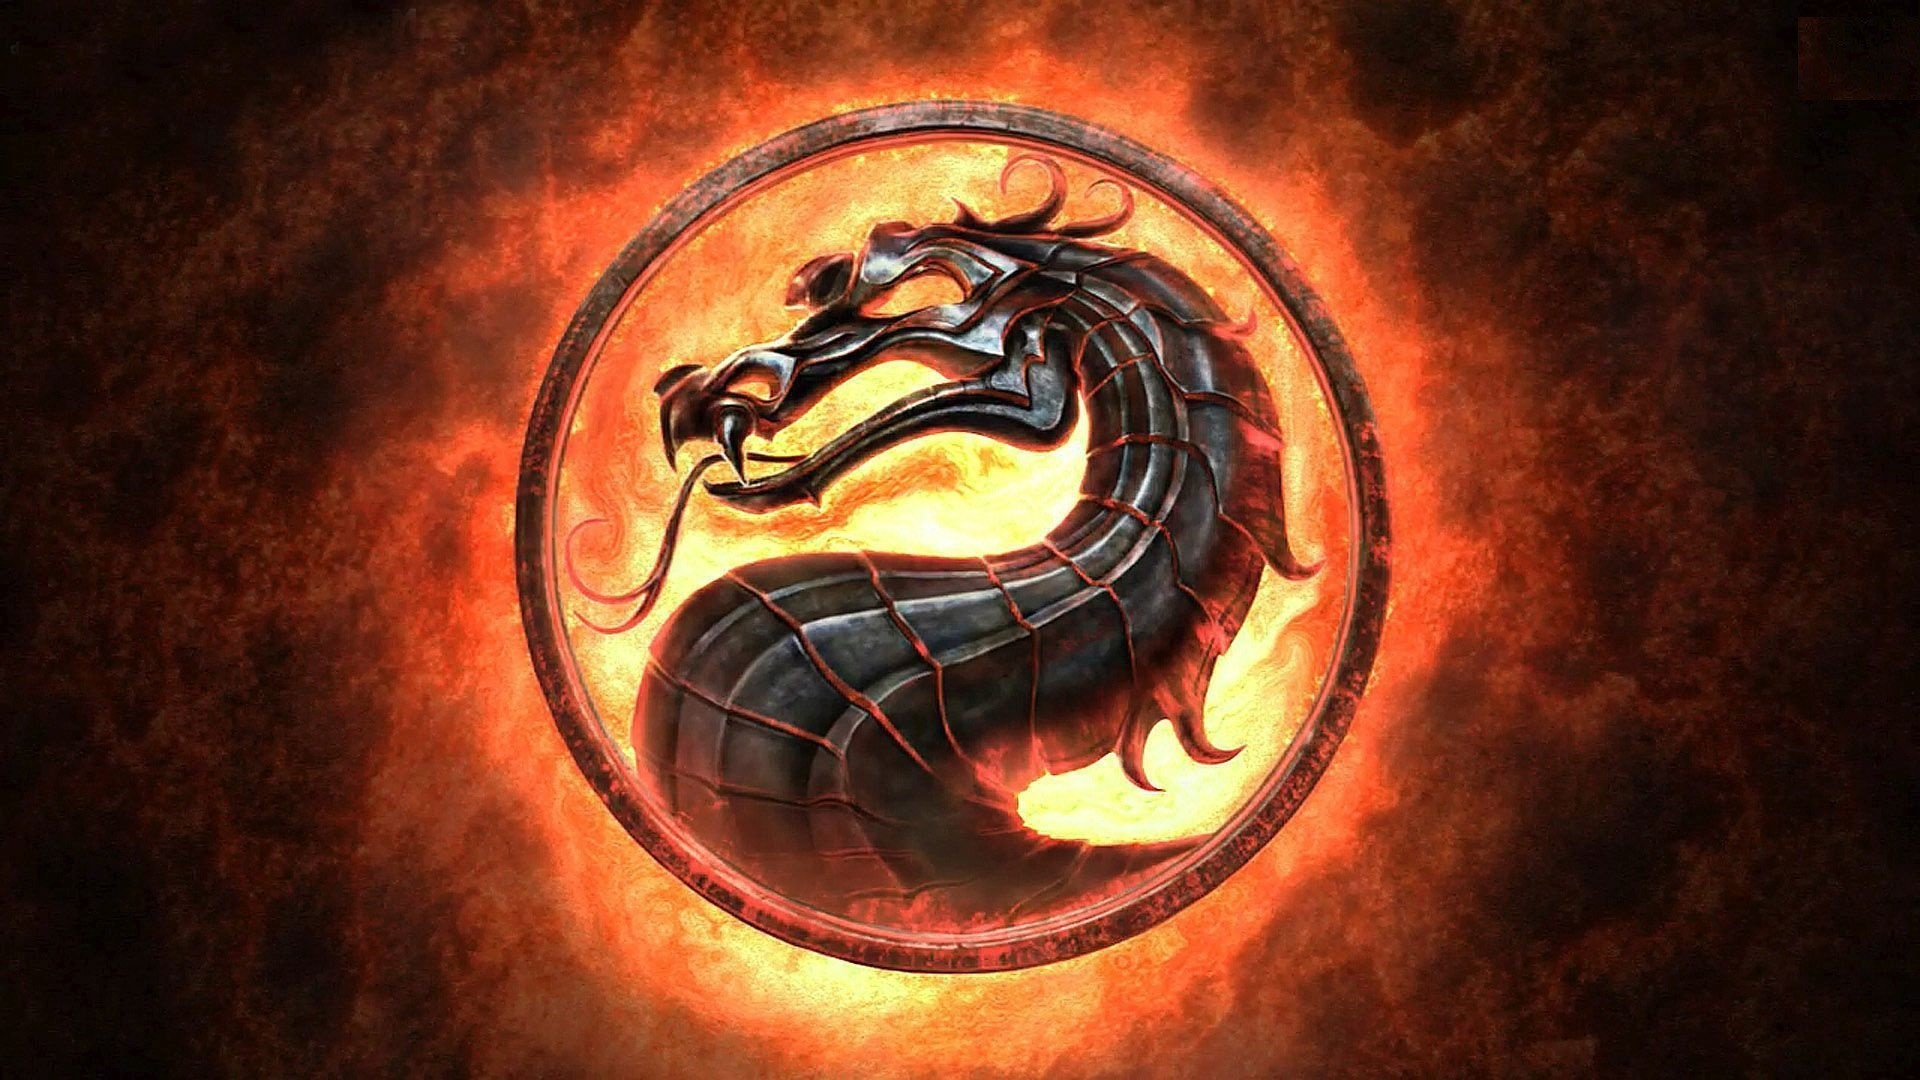 1920x1080 Mortal-kombat-dragon-logo-game-wallpapers